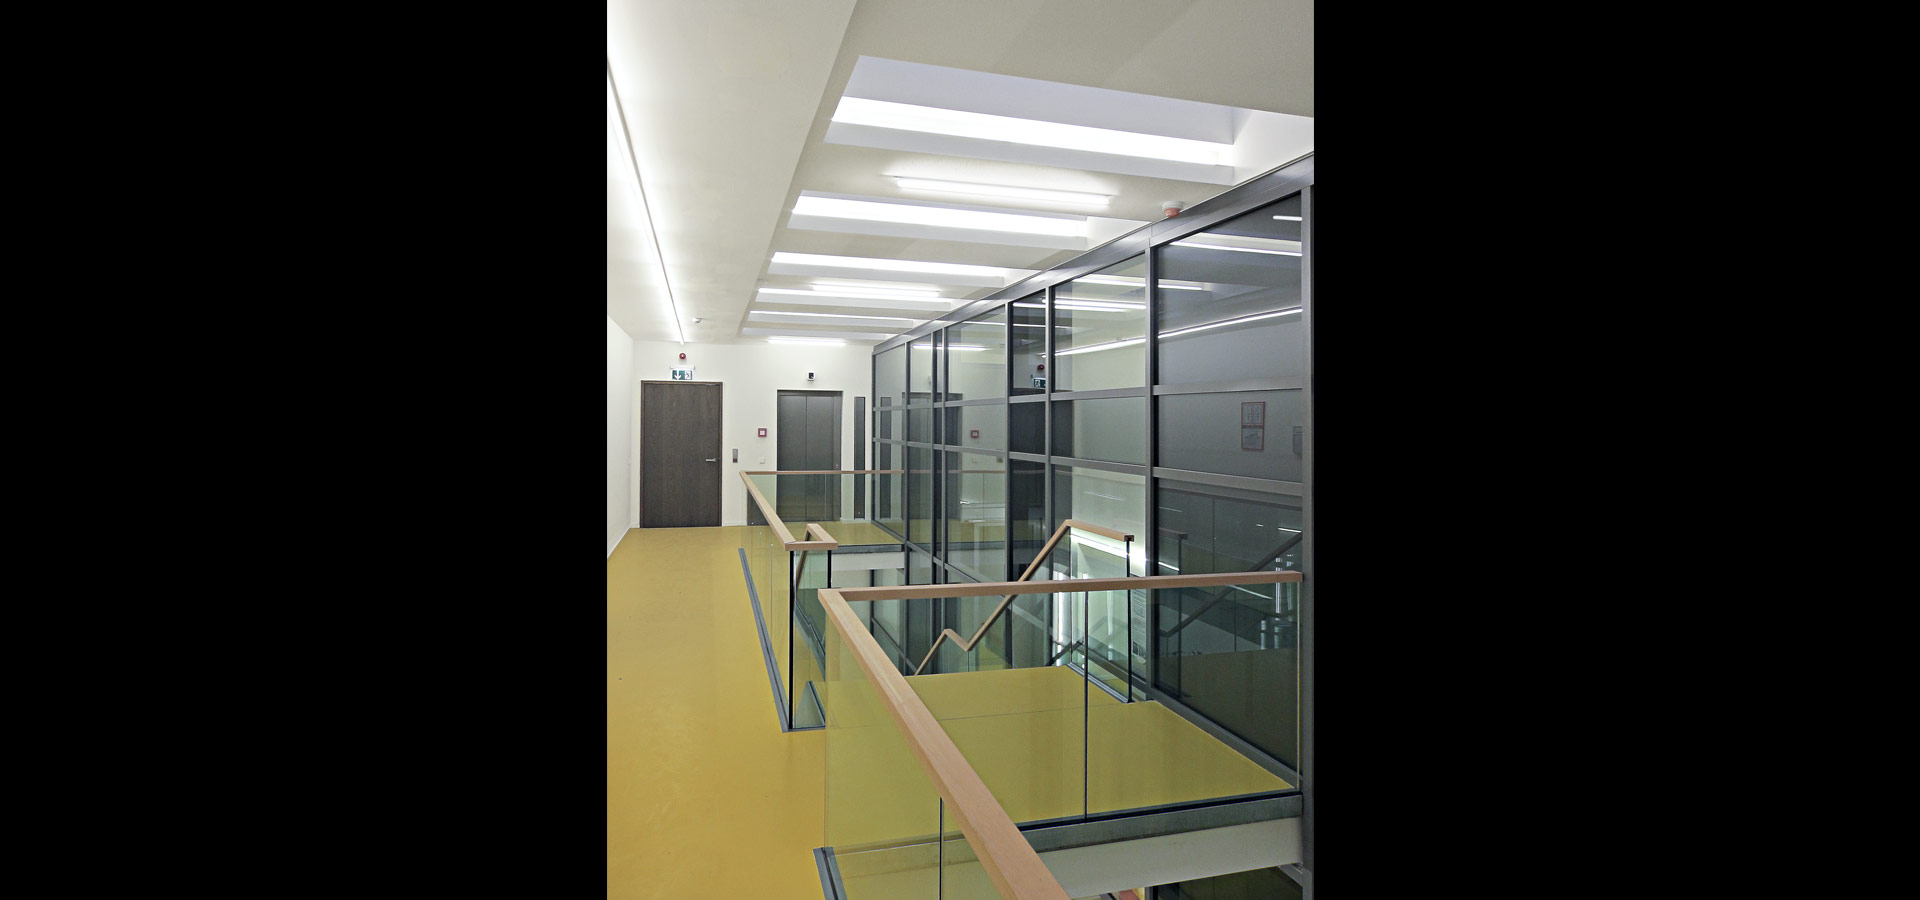 Luxsystem luminaire 20.2 emergency lighting for corridors